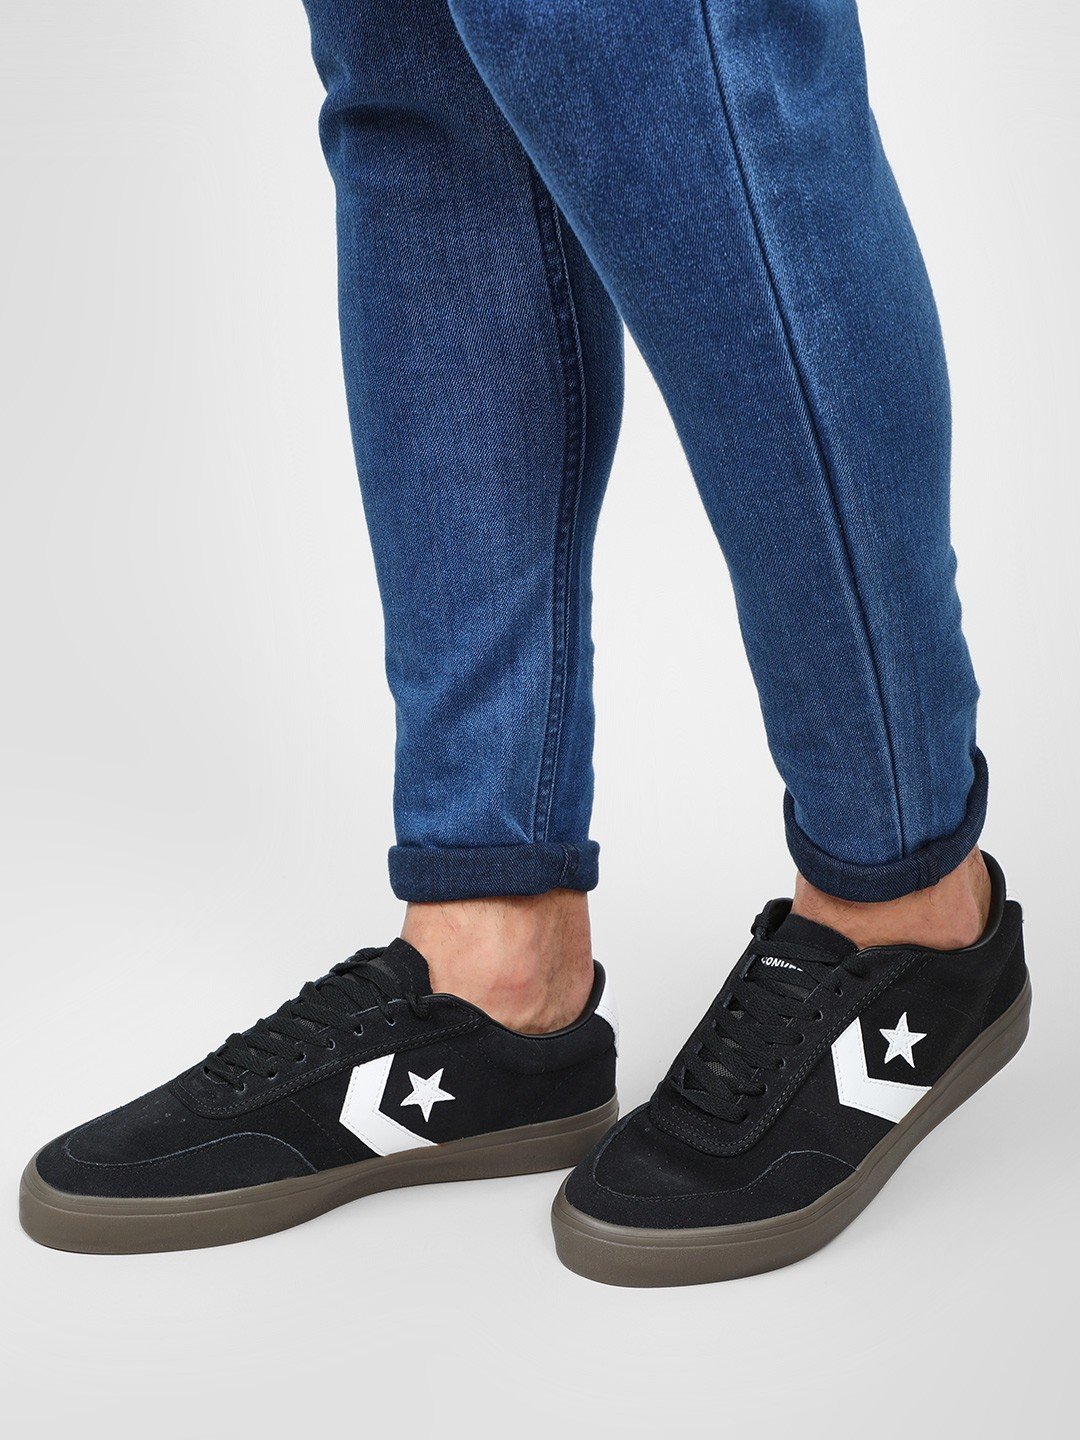 Converse Black One Star Patented Low Top Sneakers 1